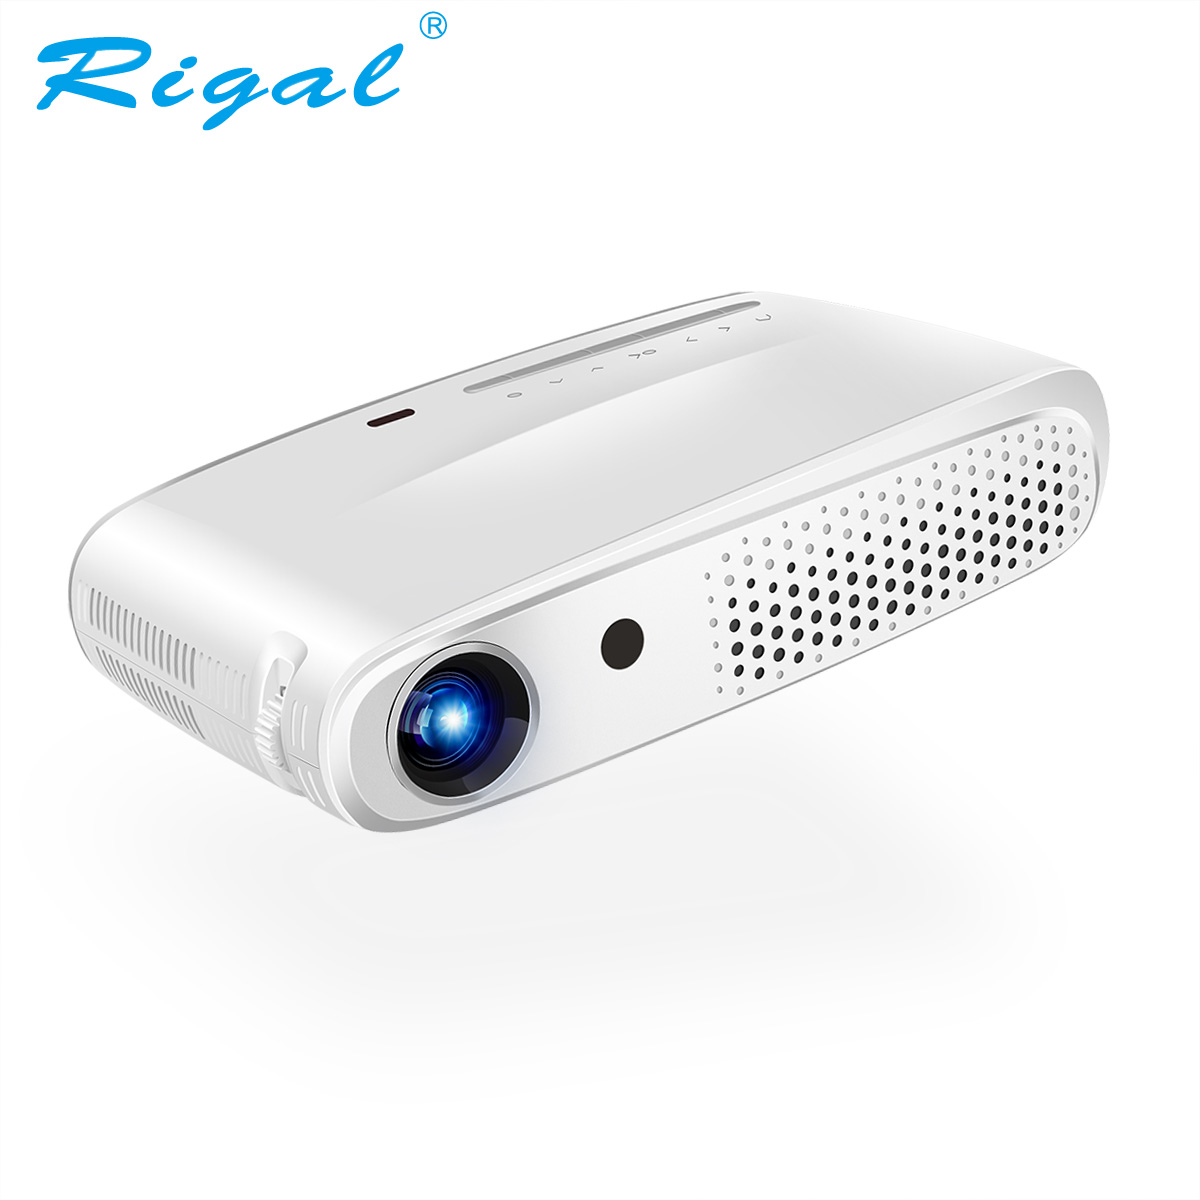 Rigal RD602 DLP Mini 3D Projector 600ANSI Lumens Android WiFi Projector Active Shutter 3D Full HD 1080P Business Home LED Beamer 2016 new dlp wifi 5600 lumens 4k android 4 4 home theater projector full hd 1080p digital video led mini projector